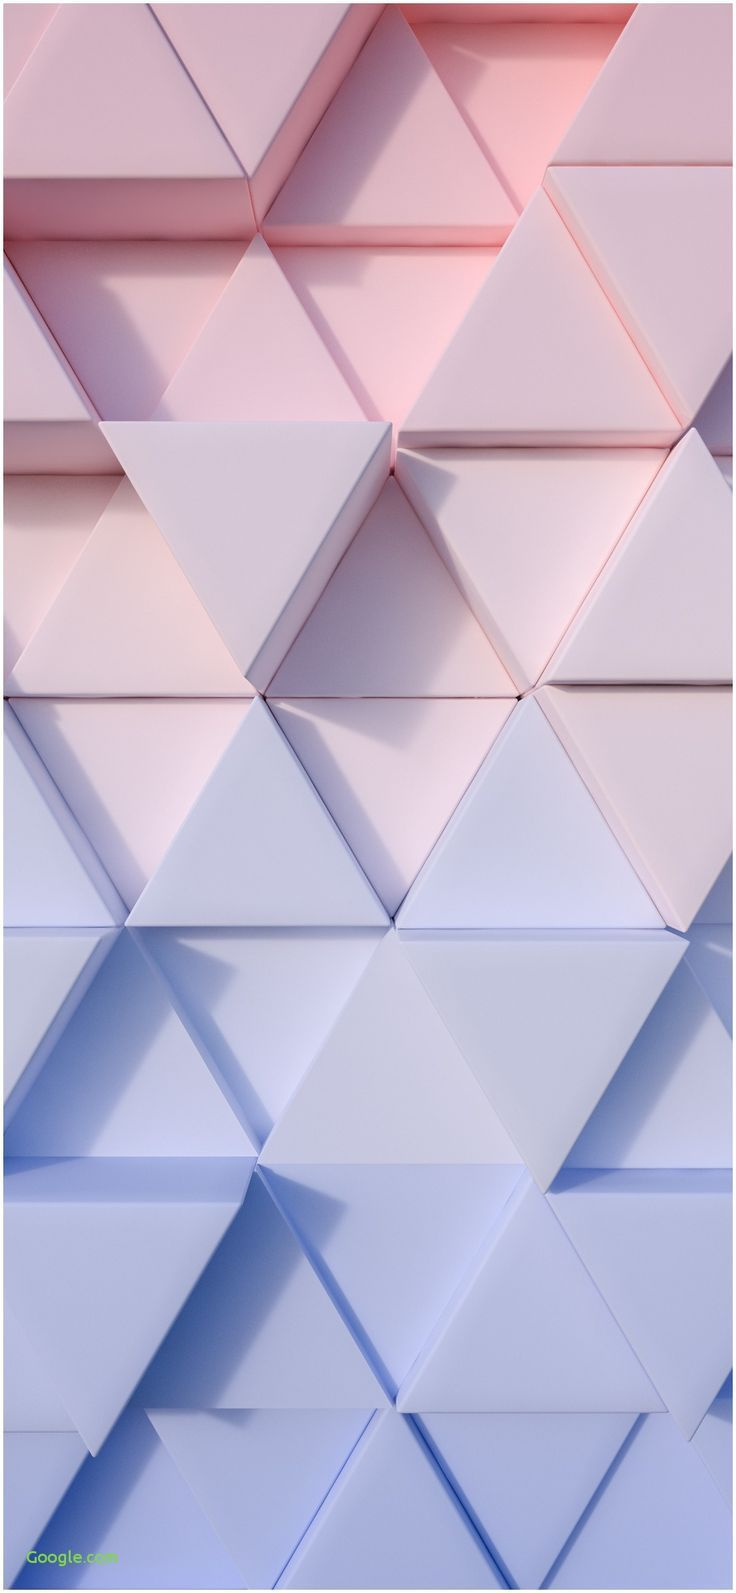 all-images.net / … iphone wallpaper 4k Unique 1125 × 2436 triangle pastel